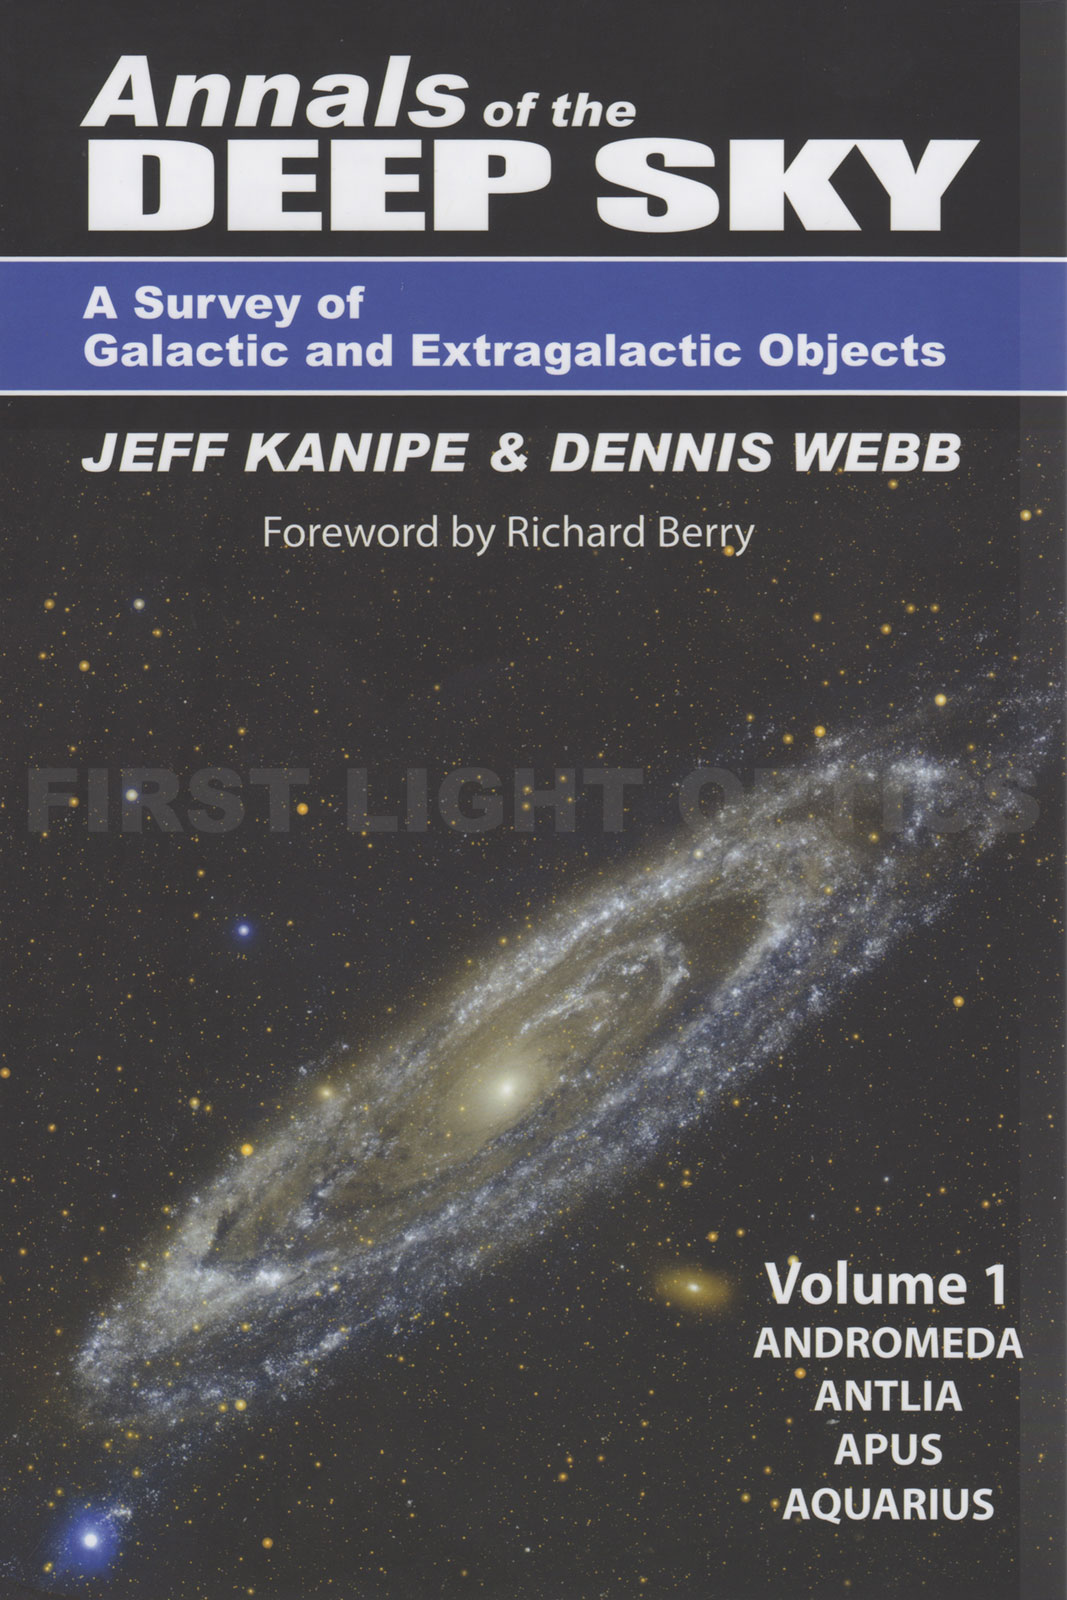 Annals of the Deep Sky Volume 1, 2, 3, 4, 5 and 6 Books